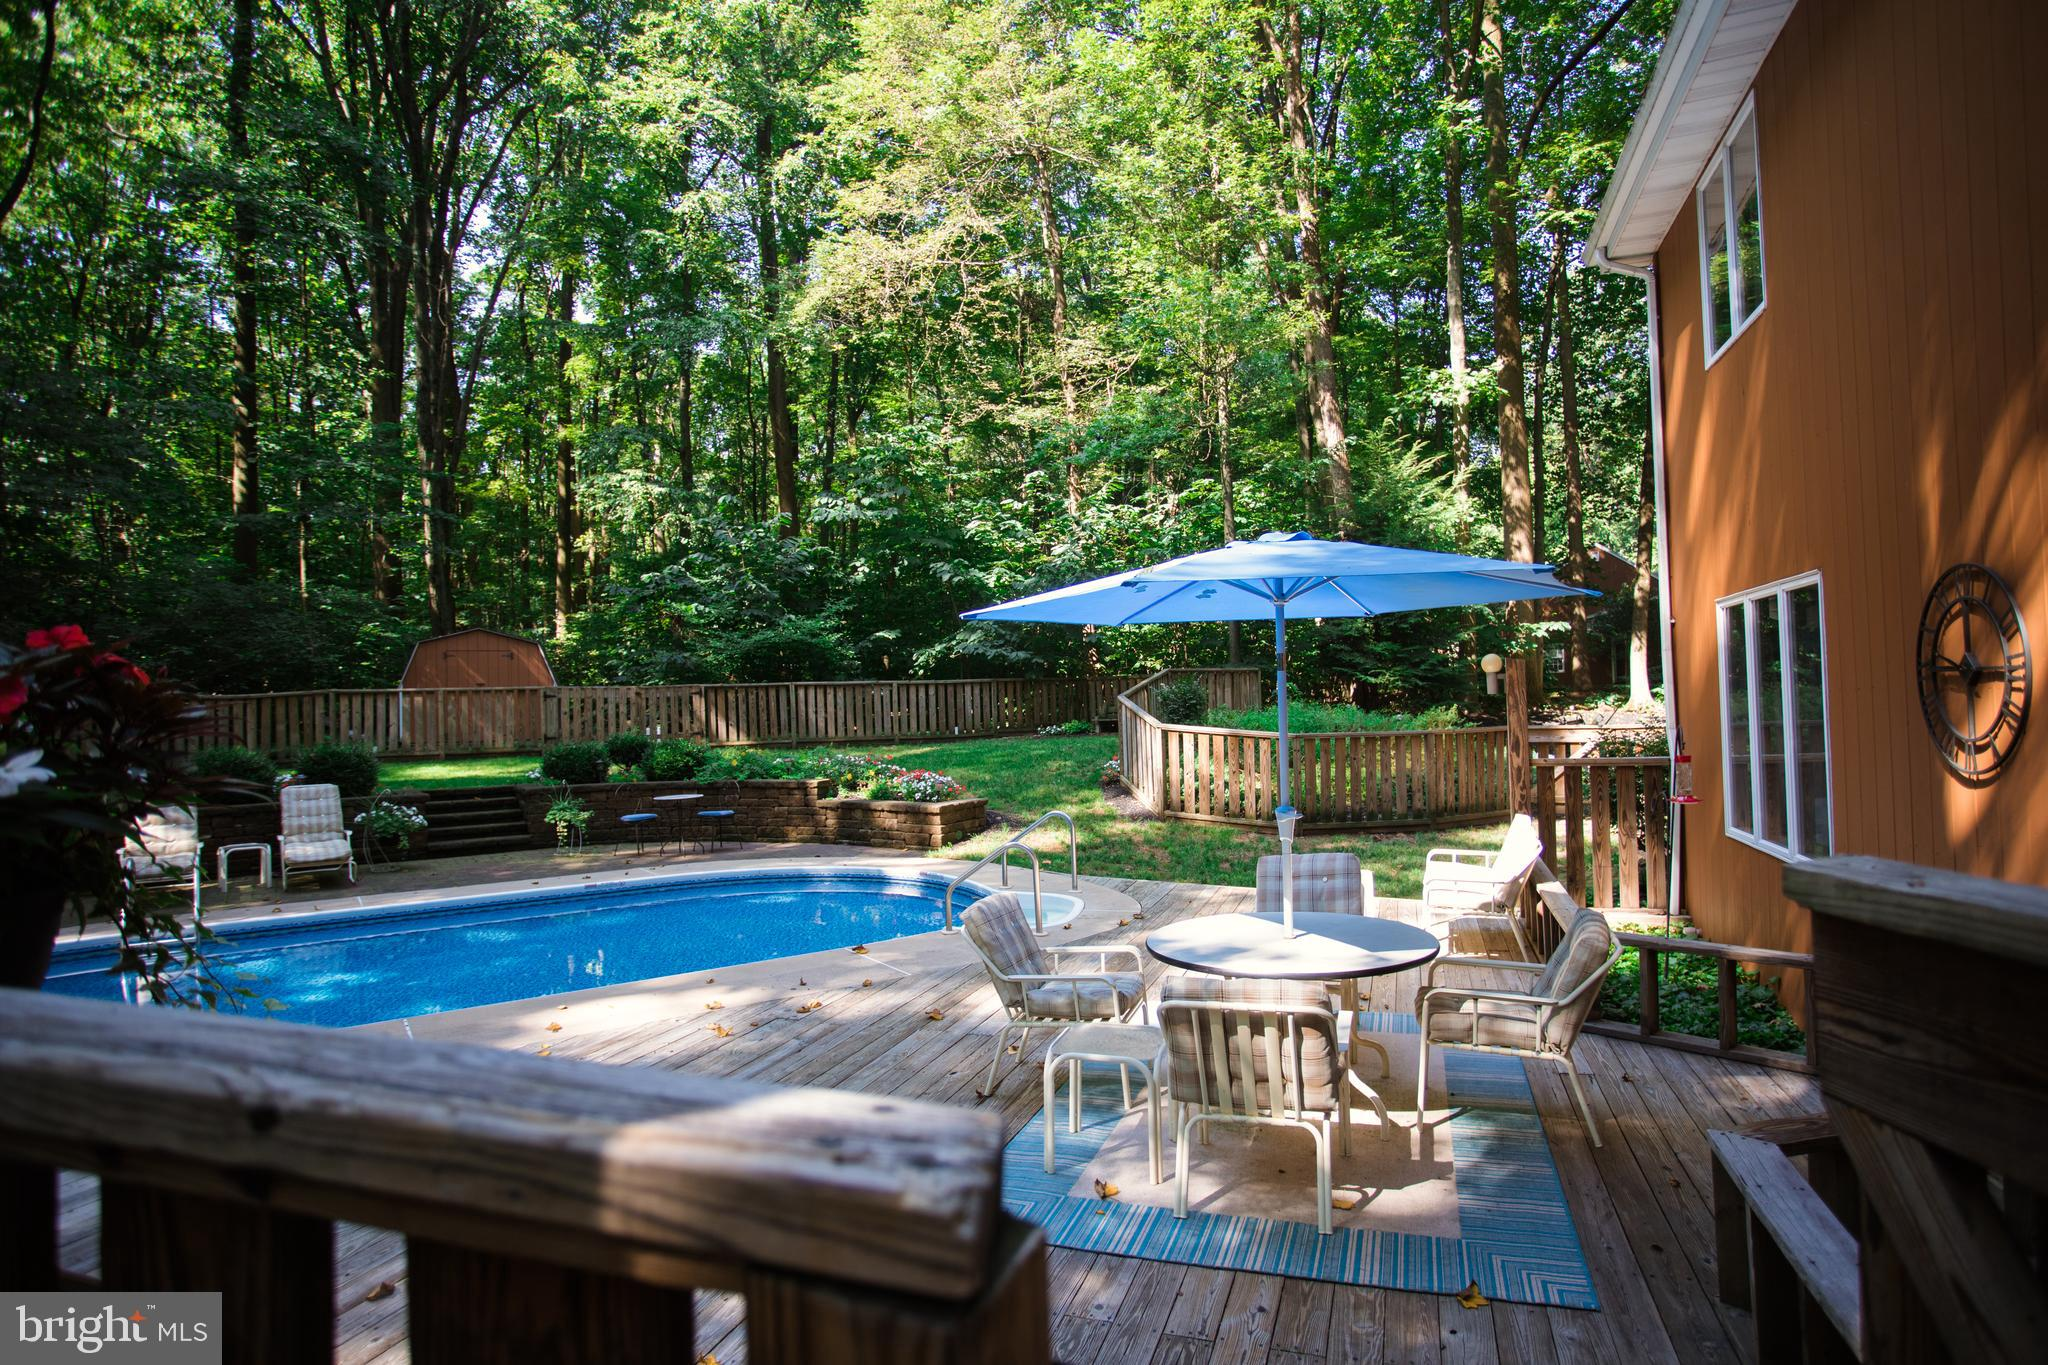 Summer fun and relaxation await